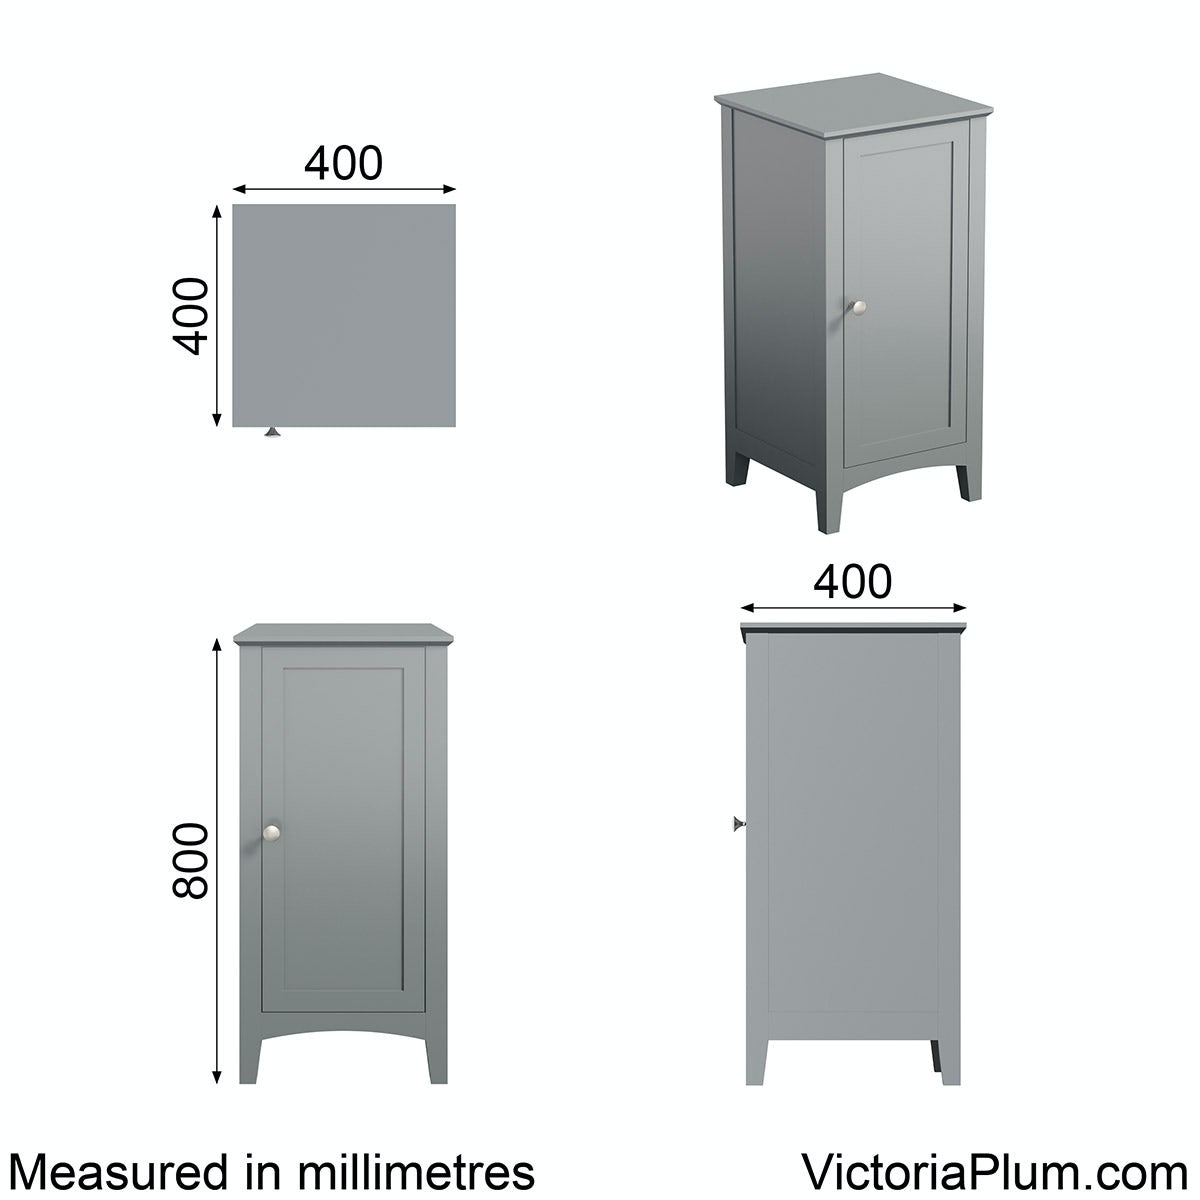 Dimensions for The Bath Co. Camberley satin grey storage unit